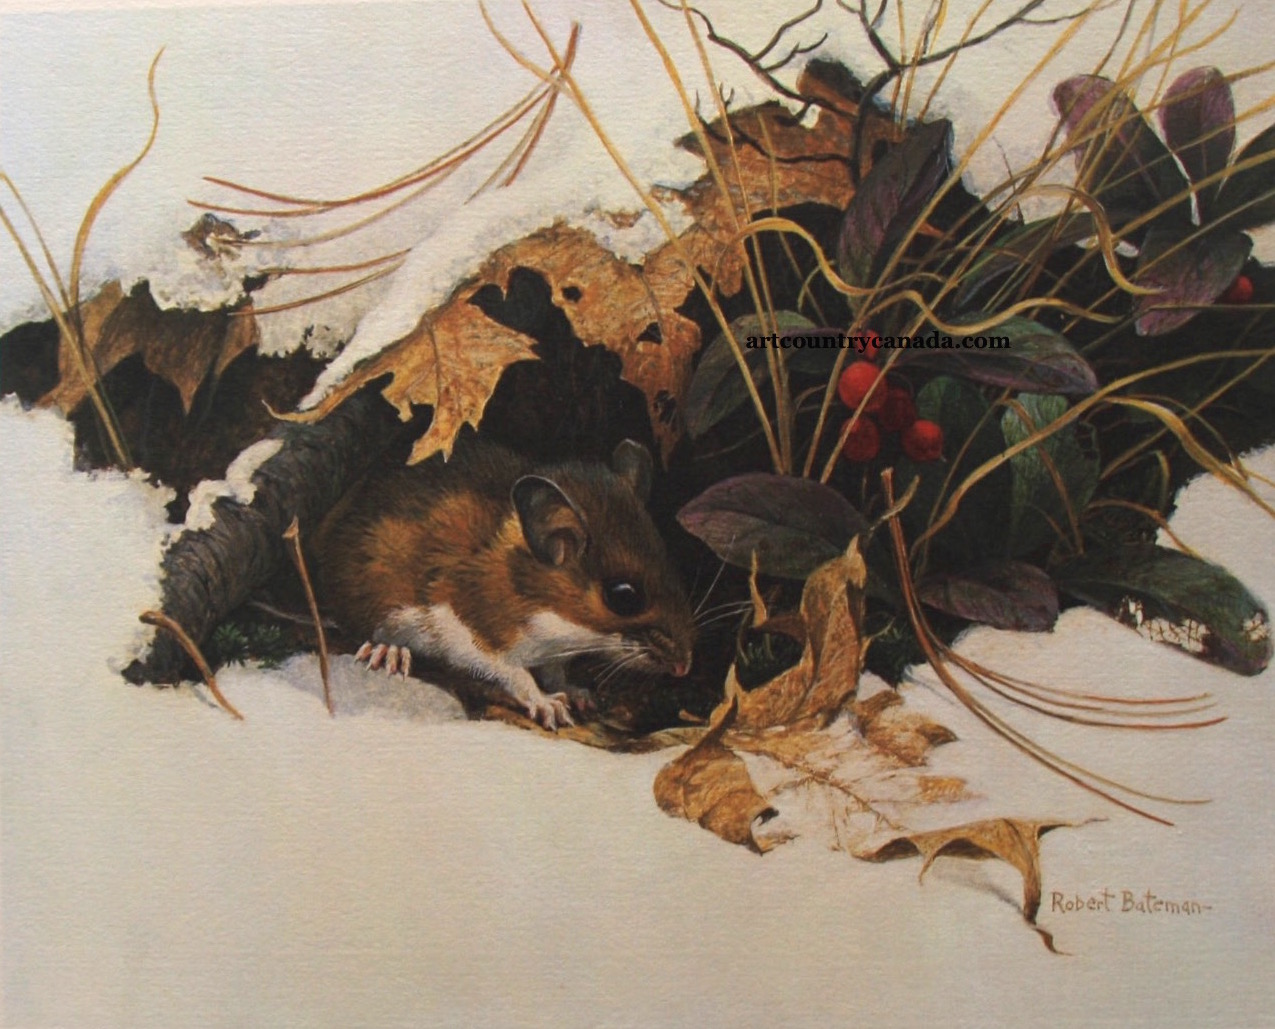 Robert Bateman White Footed Mouse in Wintergreen